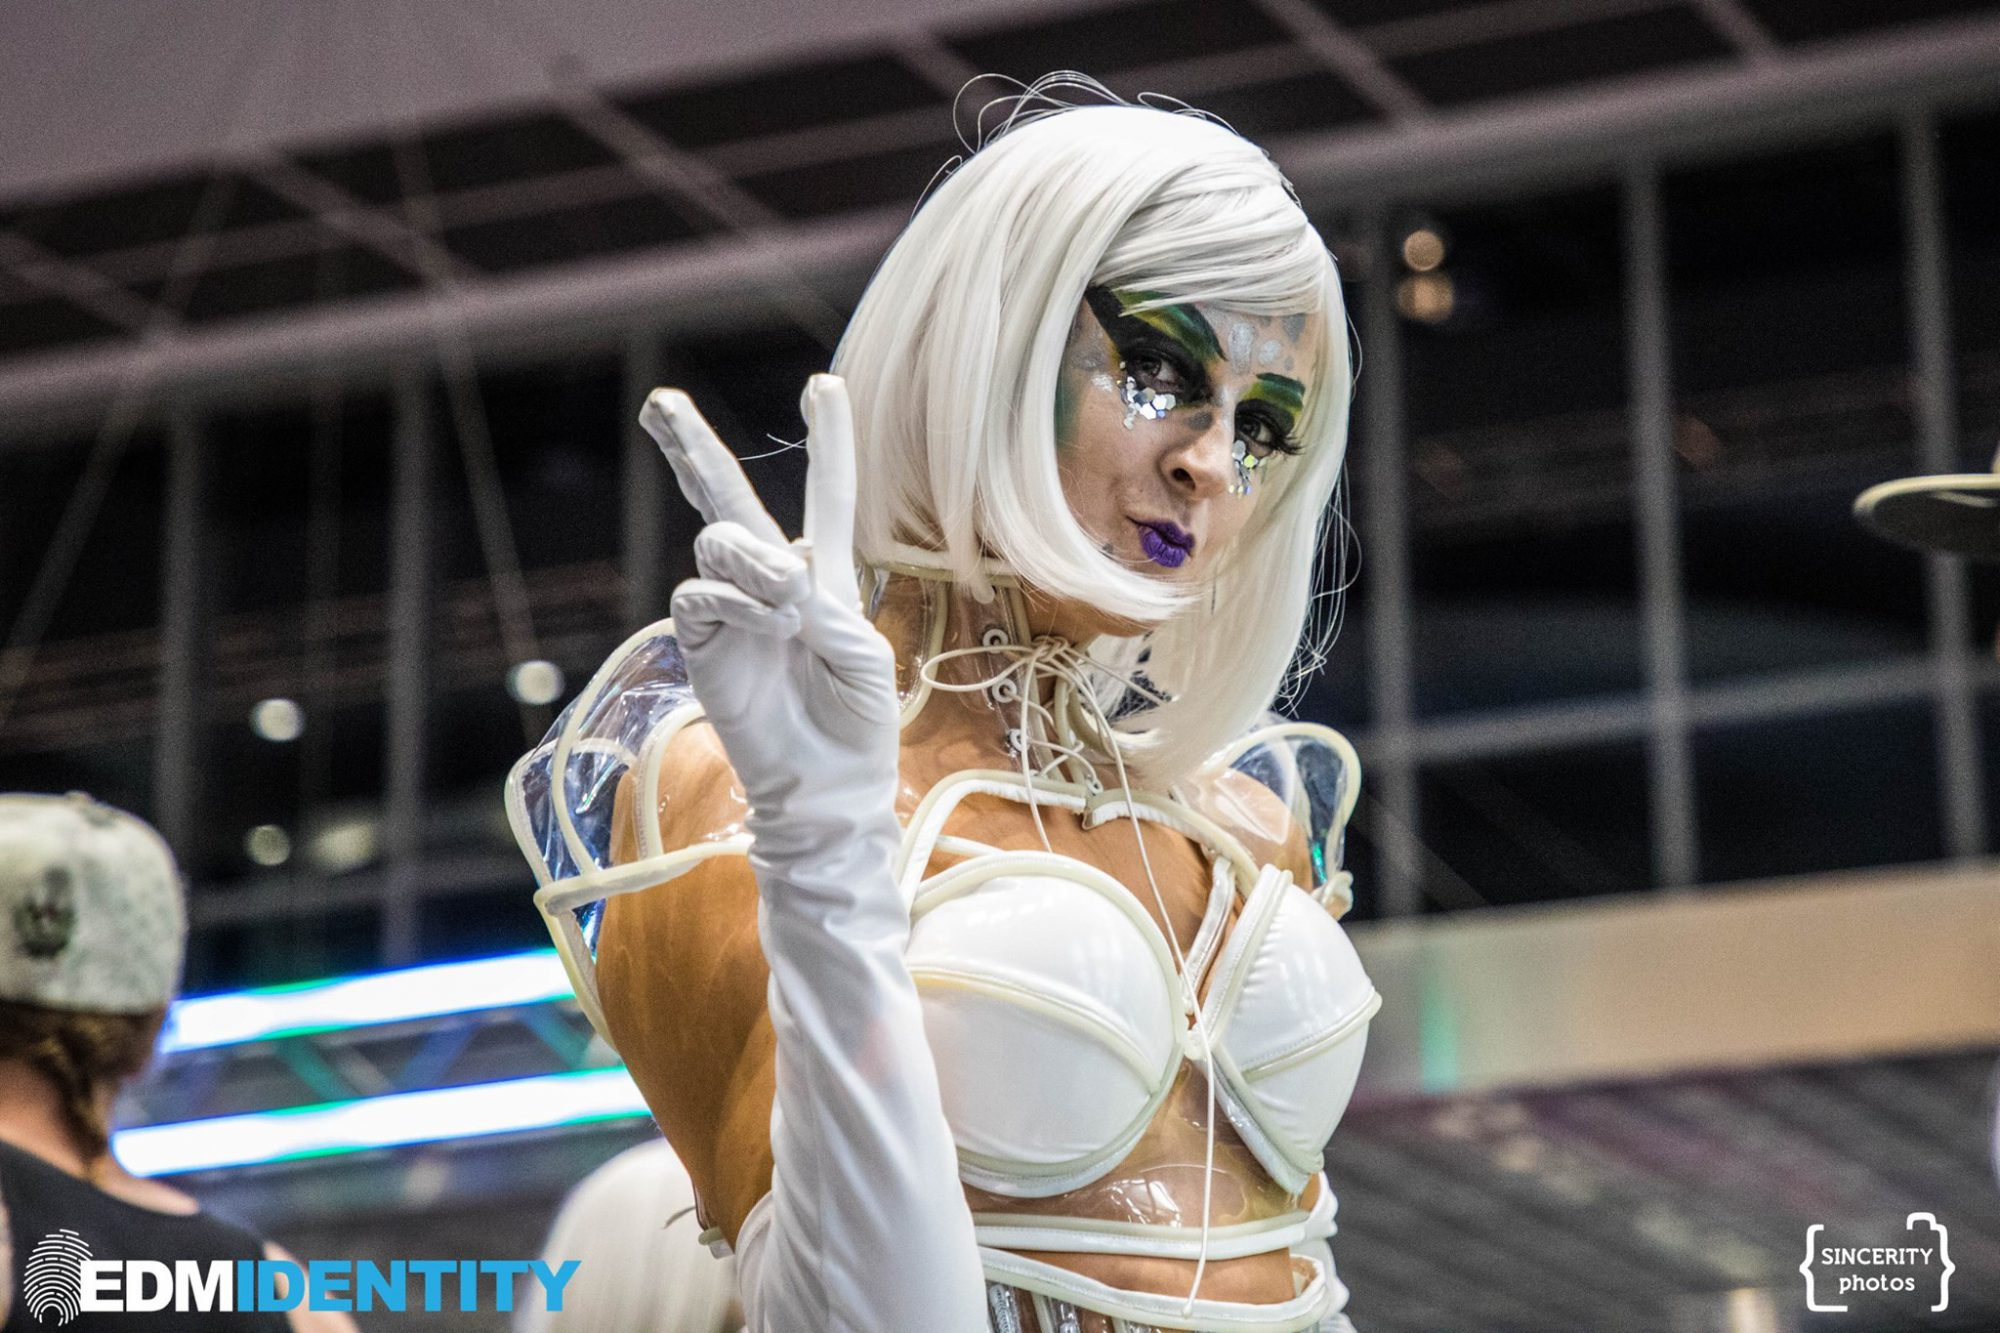 Decadence Colorado Performer in White